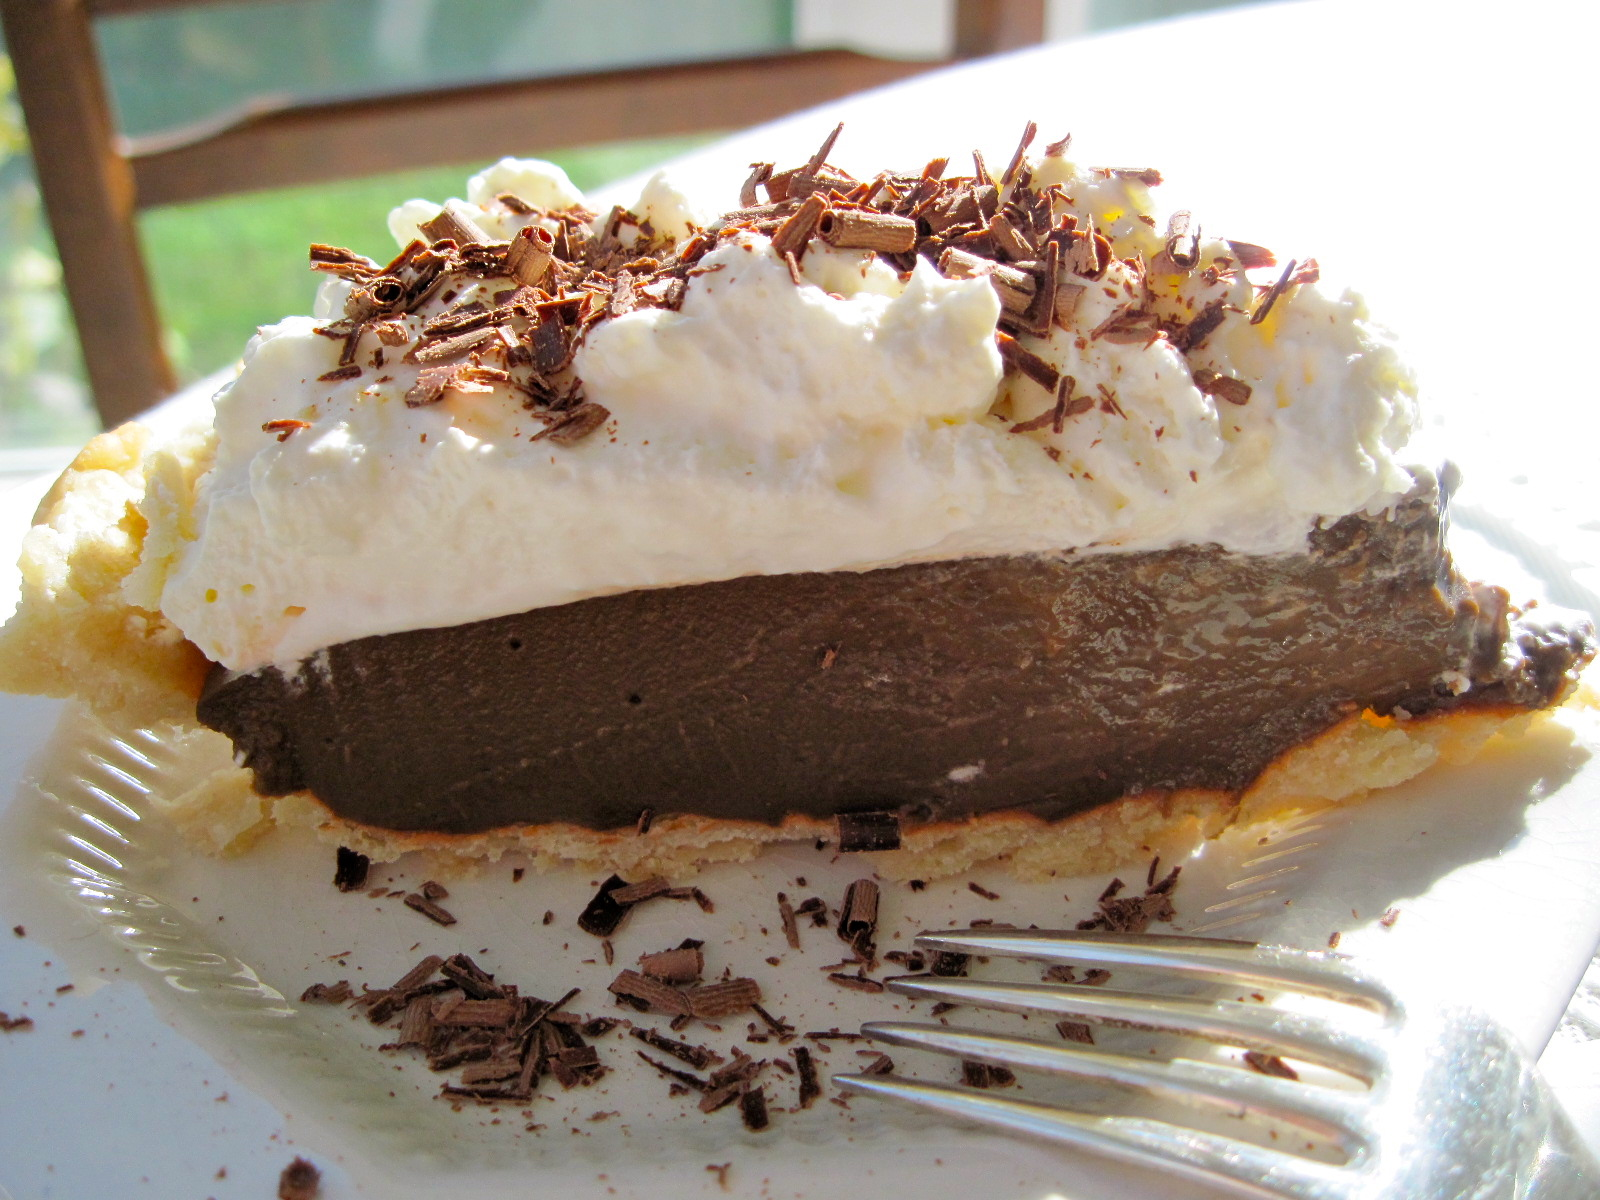 Chocolate Cream Pie — the chic brûlée